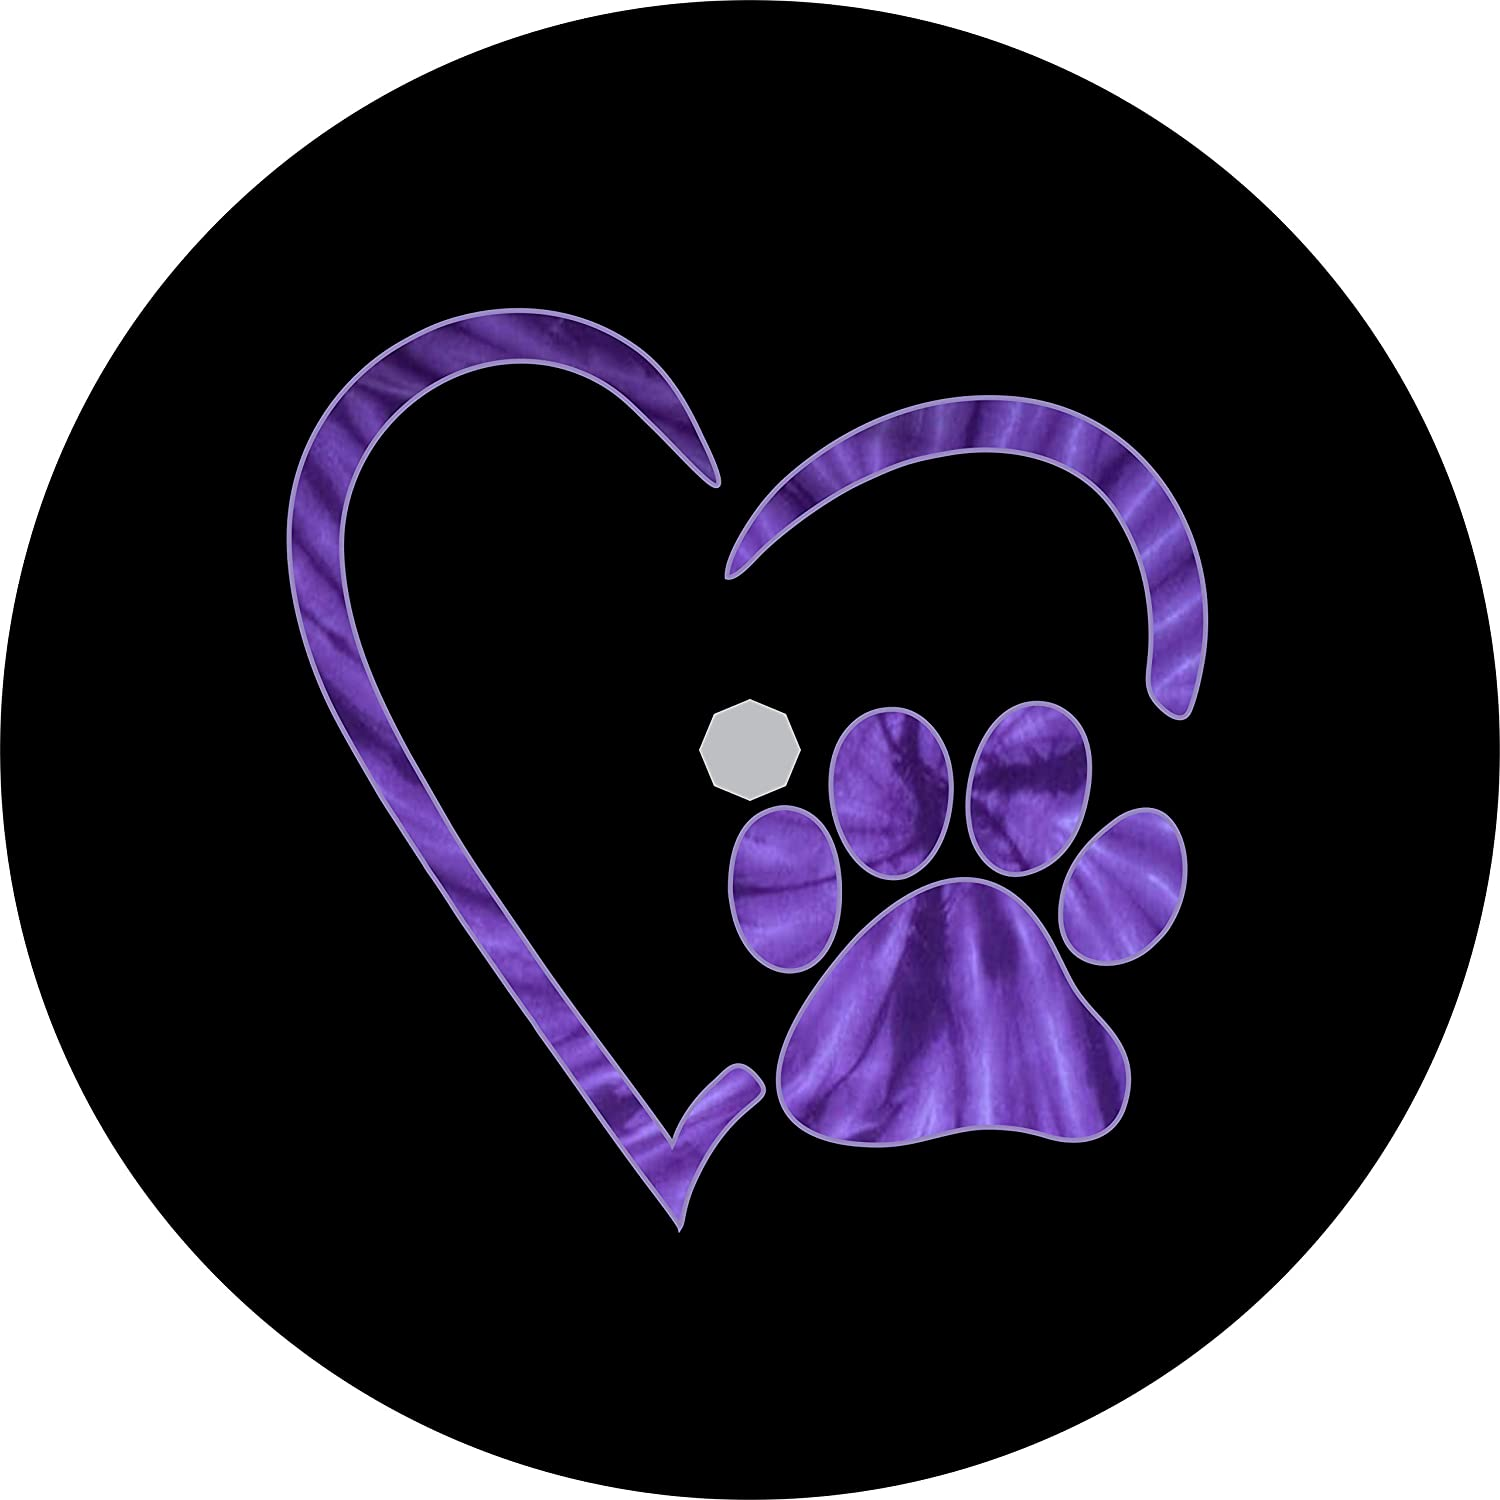 TIRE COVER CENTRAL Paws Choice Love Purple Heart Tire Tie Cov At the price Spare Dye